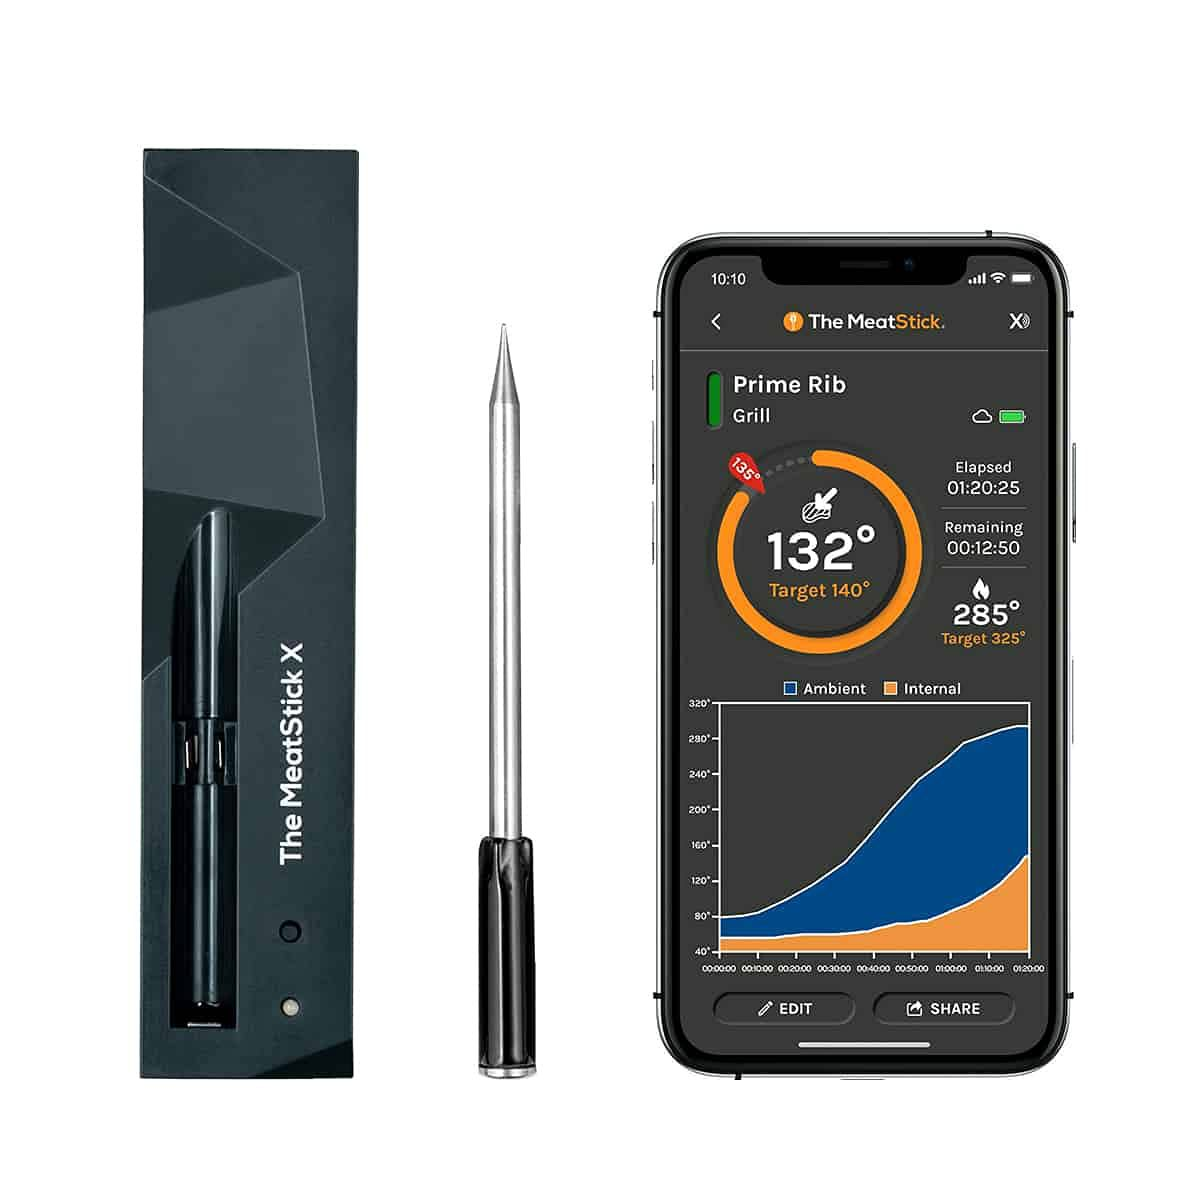 The MeatStick X Wireless Grill Thermometer